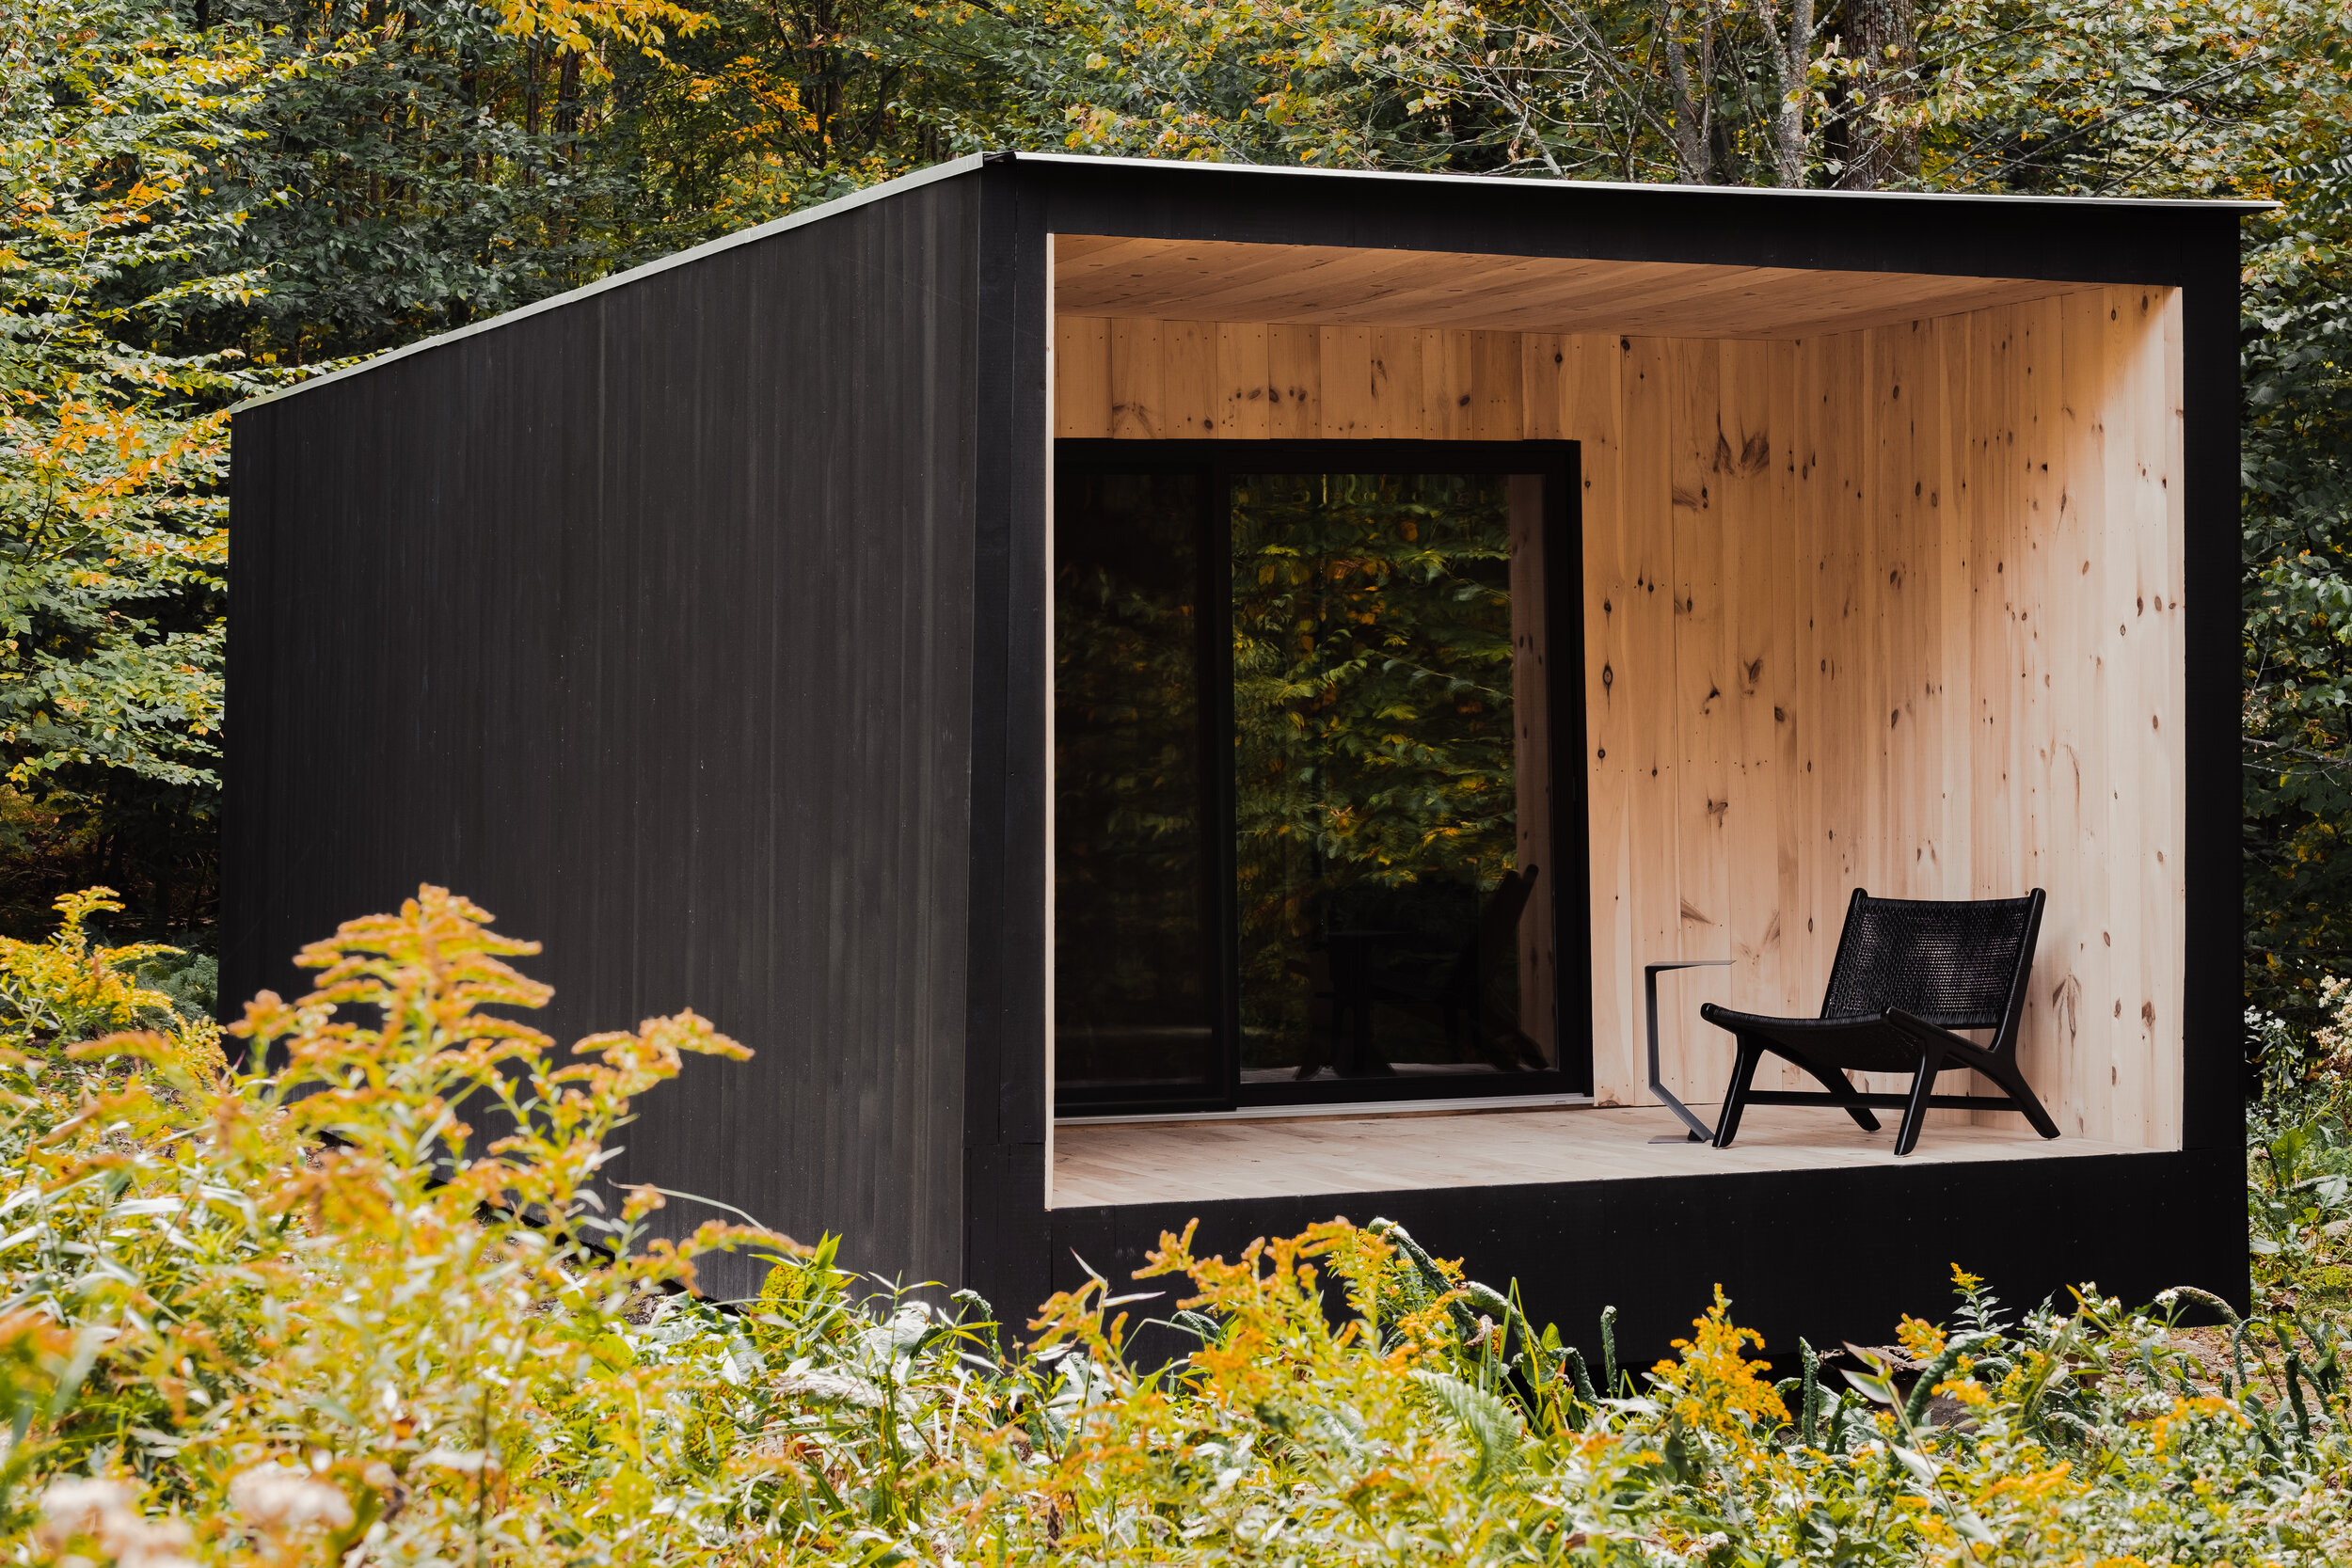 Cabin with charred timber facade and covered porch.